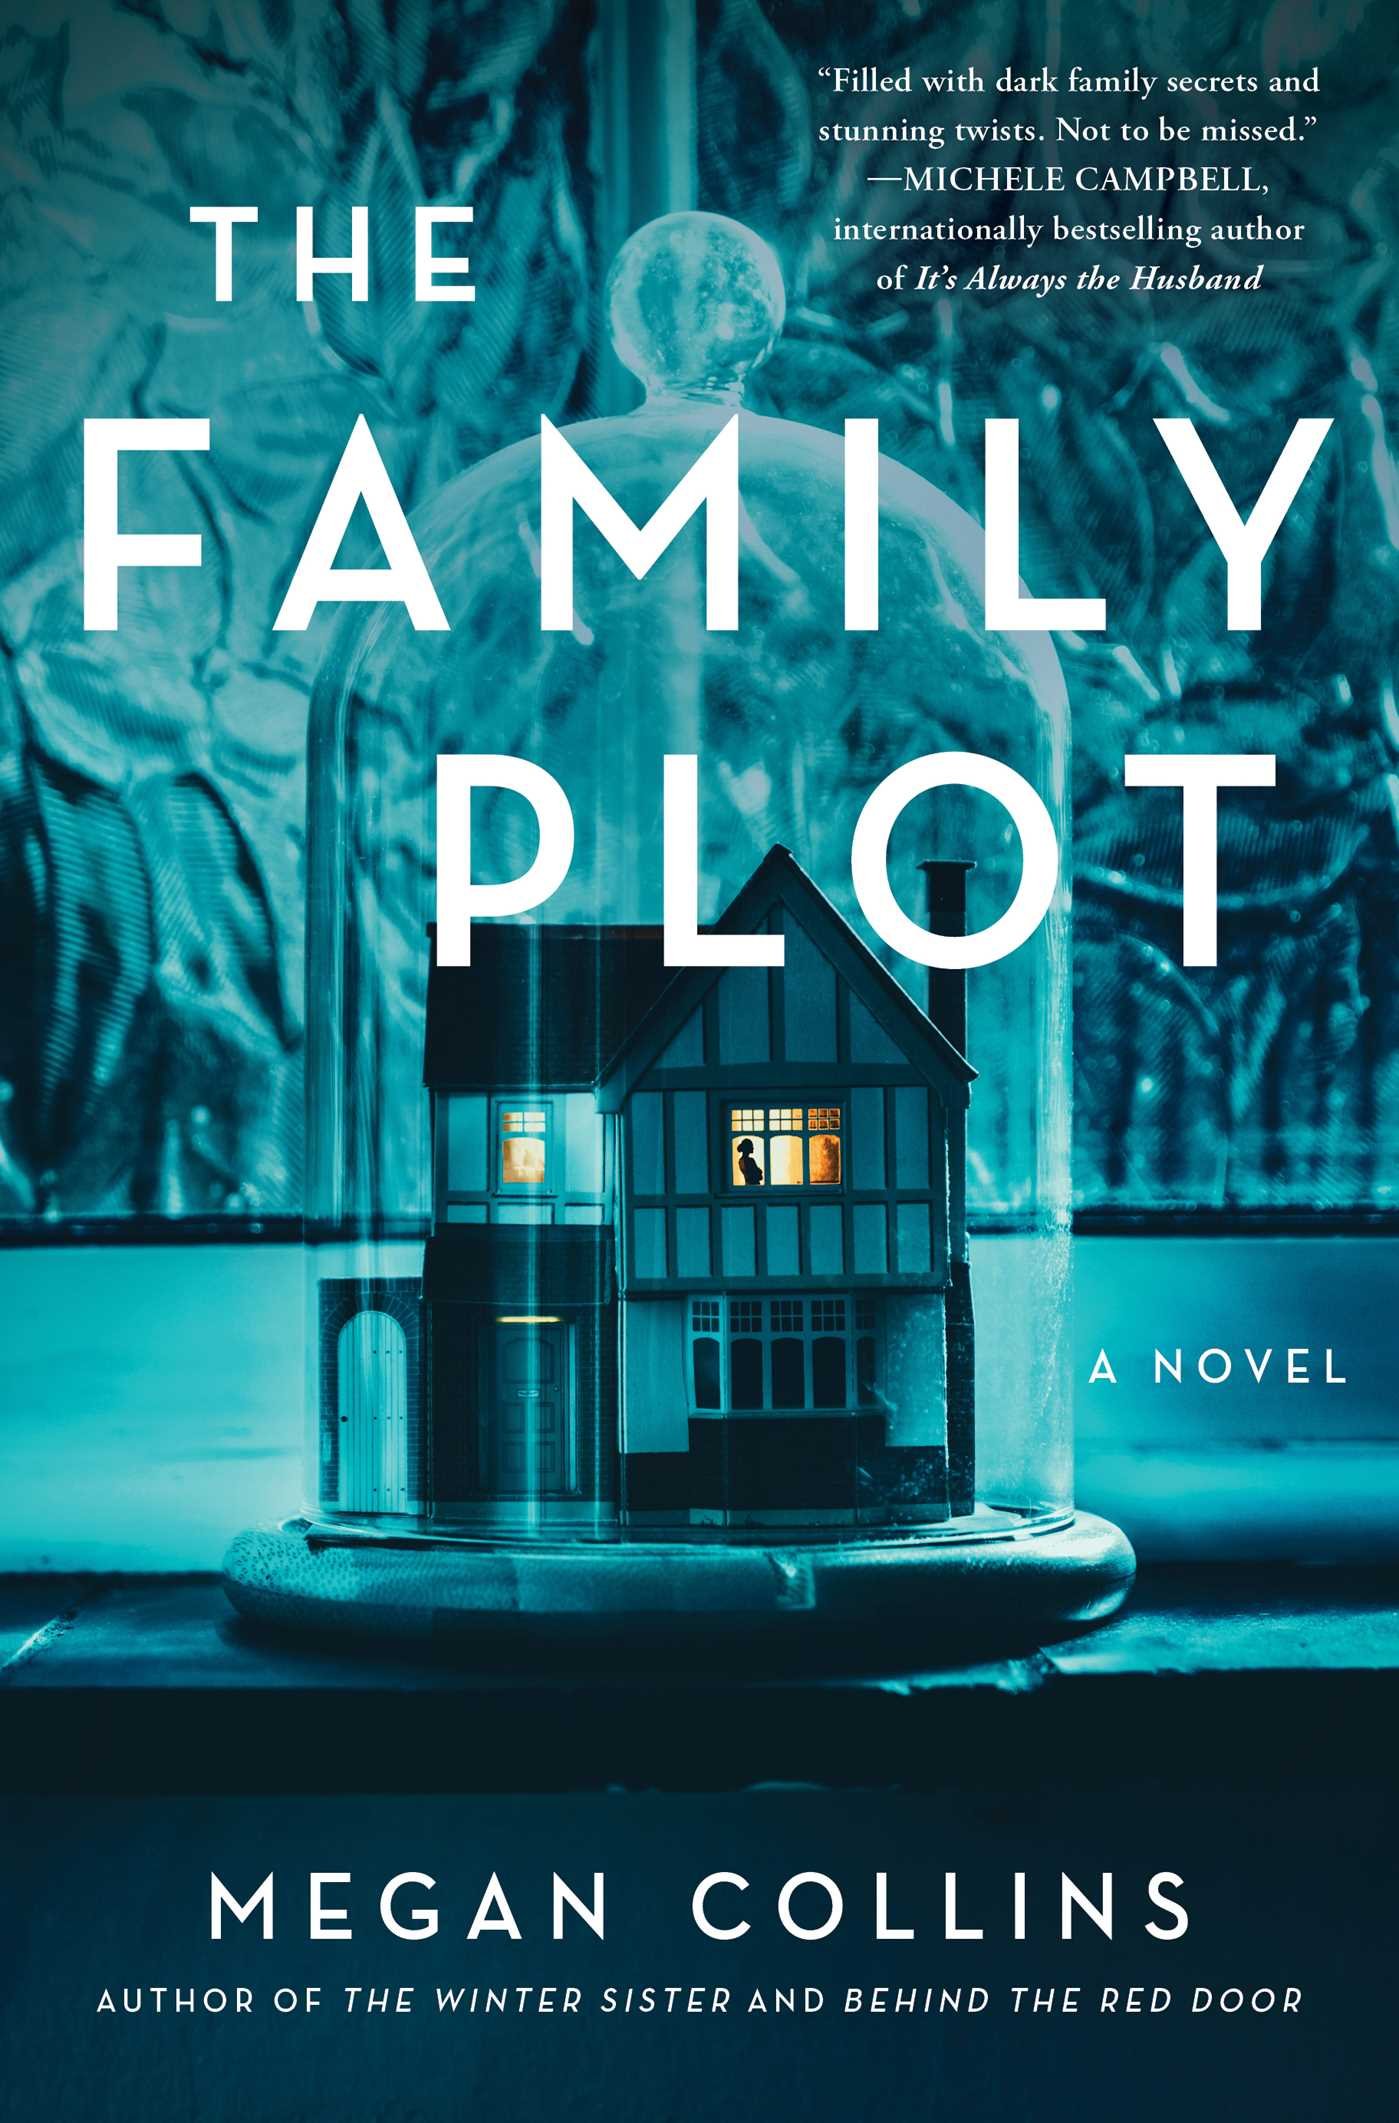 The Family Plot, Megan Collins, House, Glass, Table, Horror, Secrets, Family, Brother, Sister, Blue, Scary